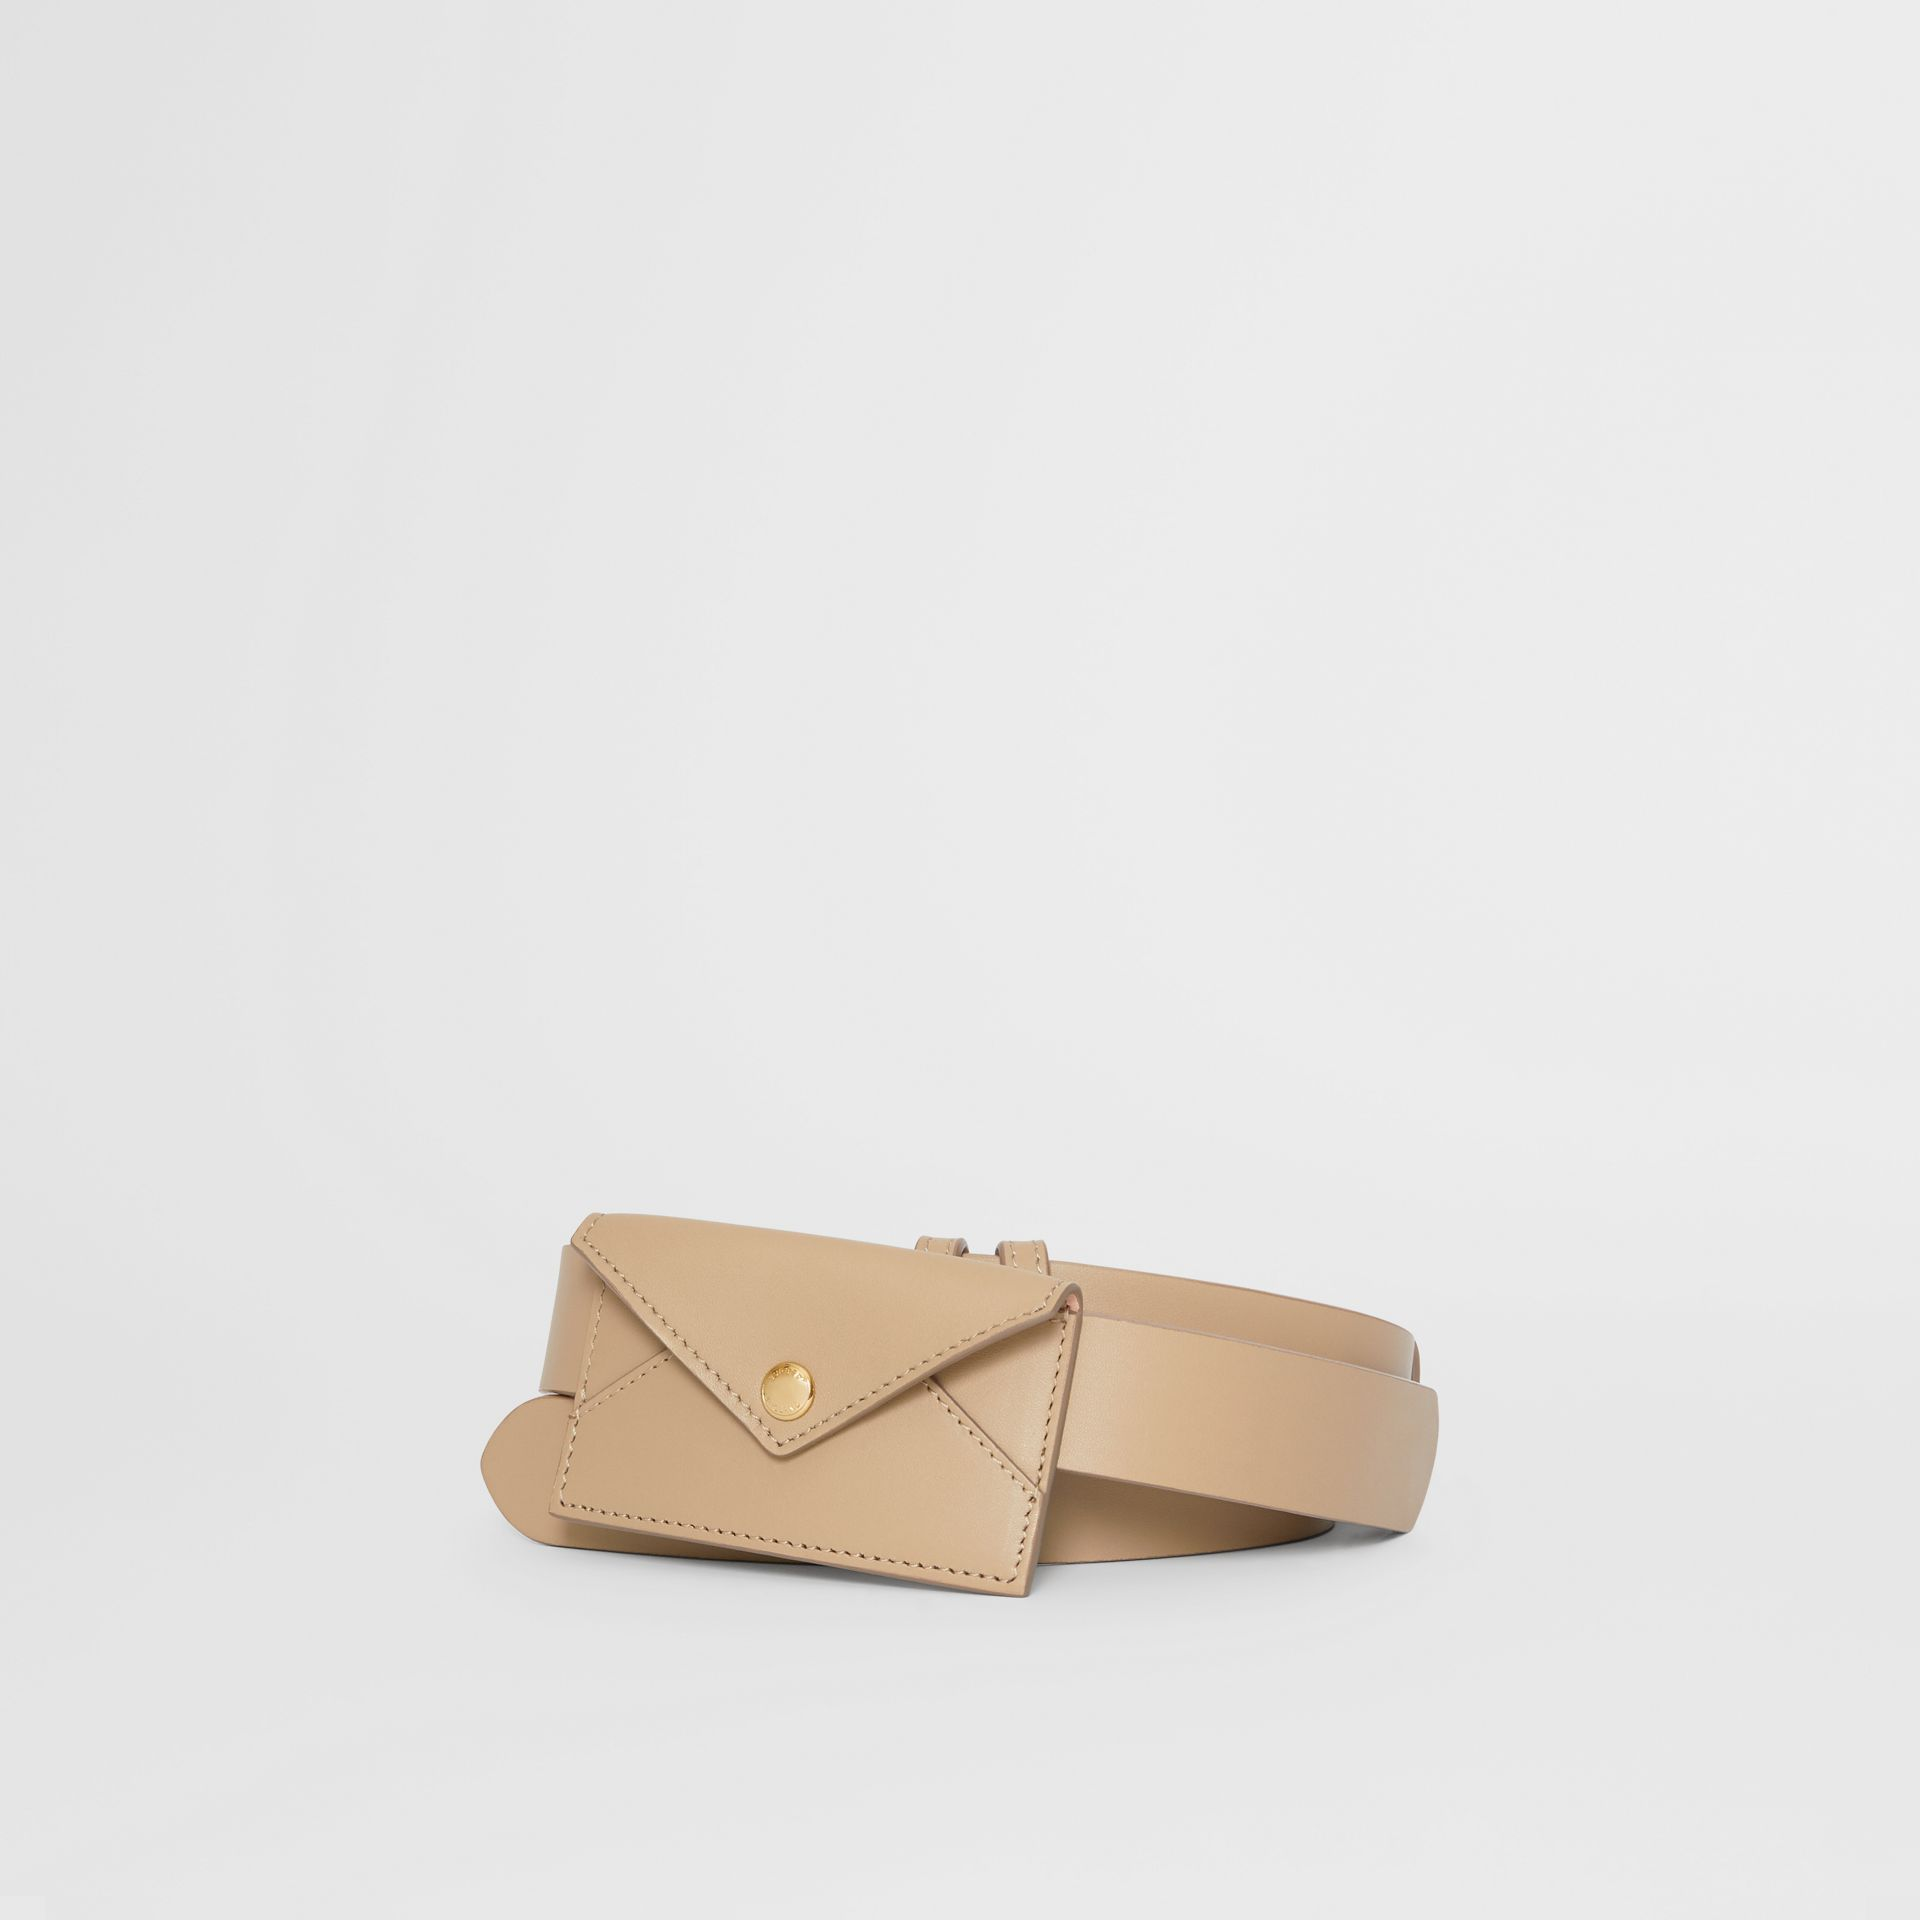 Envelope Detail Leather Belt in Latte - Women | Burberry Hong Kong S.A.R - gallery image 0